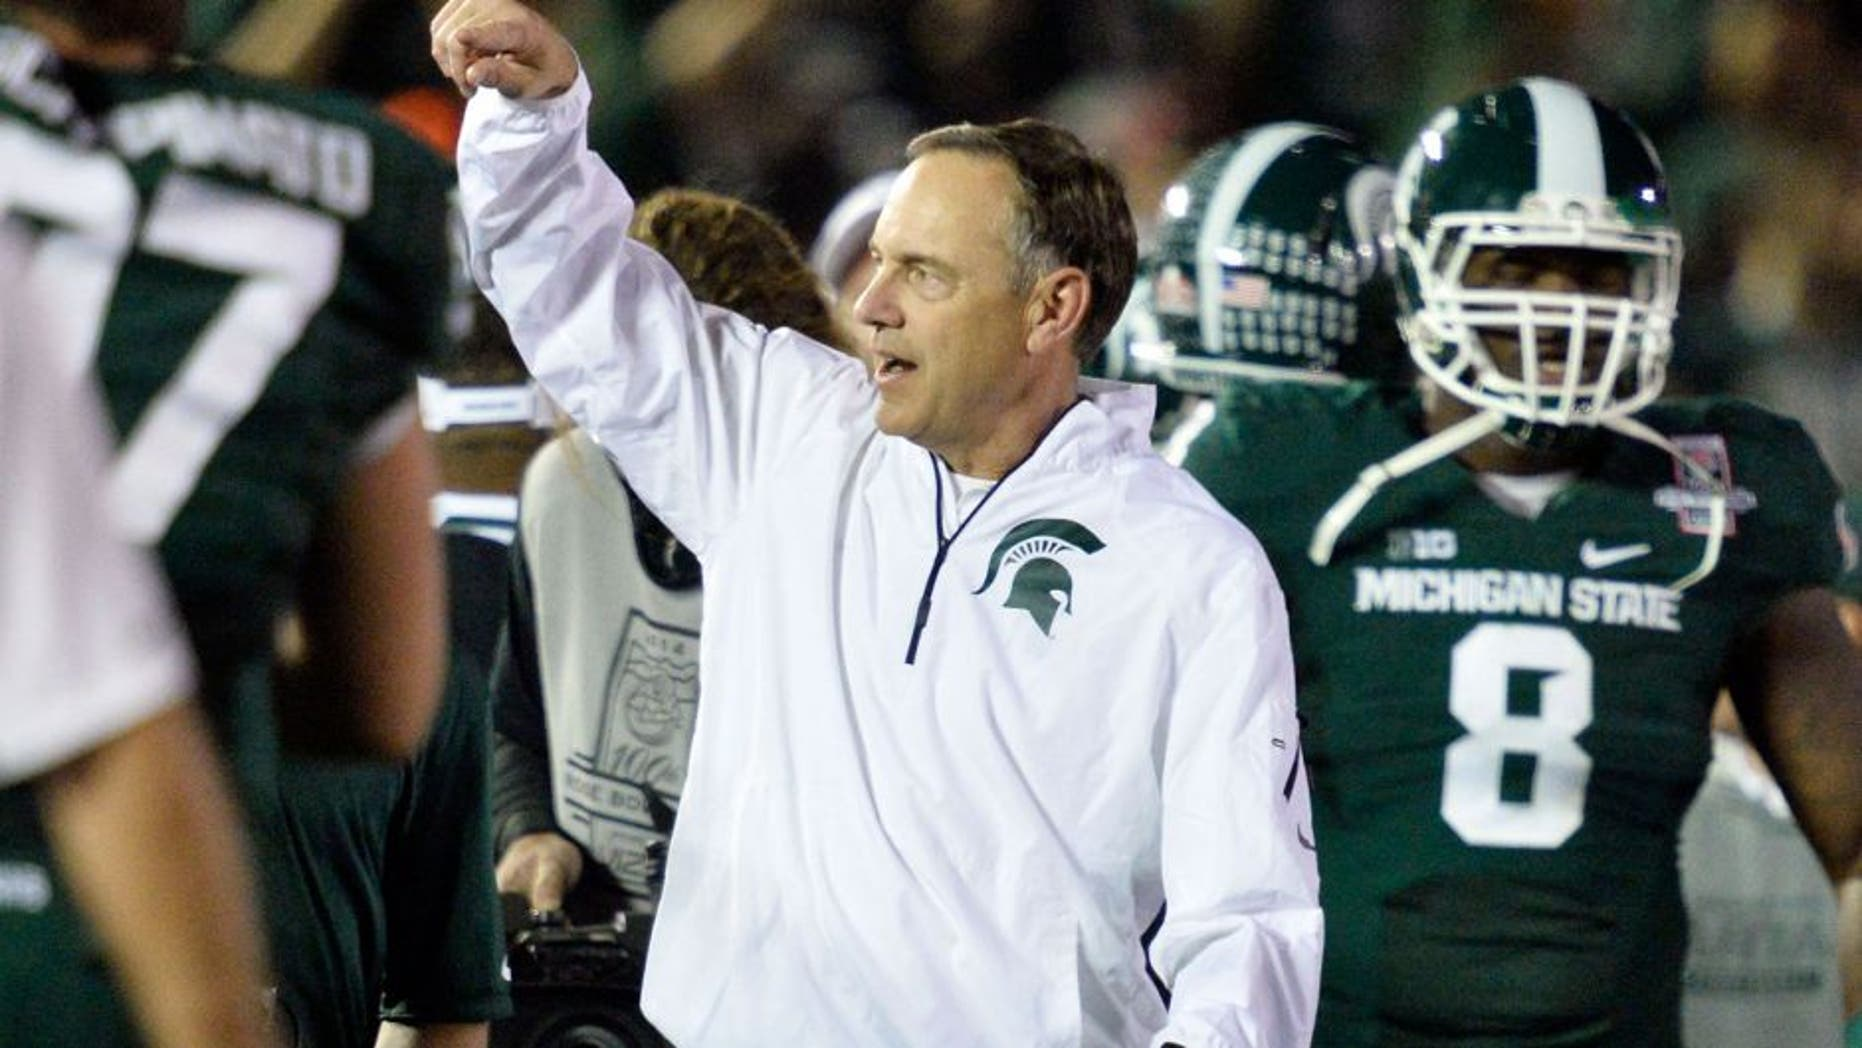 Jan 1, 2014; Pasadena, CA, USA; Michigan State Spartans head coach Mark Dantonio celebrates after Michigan State Spartans beat Stanford Cardinal 24-20 at the Rose Bowl. Mandatory Credit: Robert Hanashiro-USA TODAY Sports